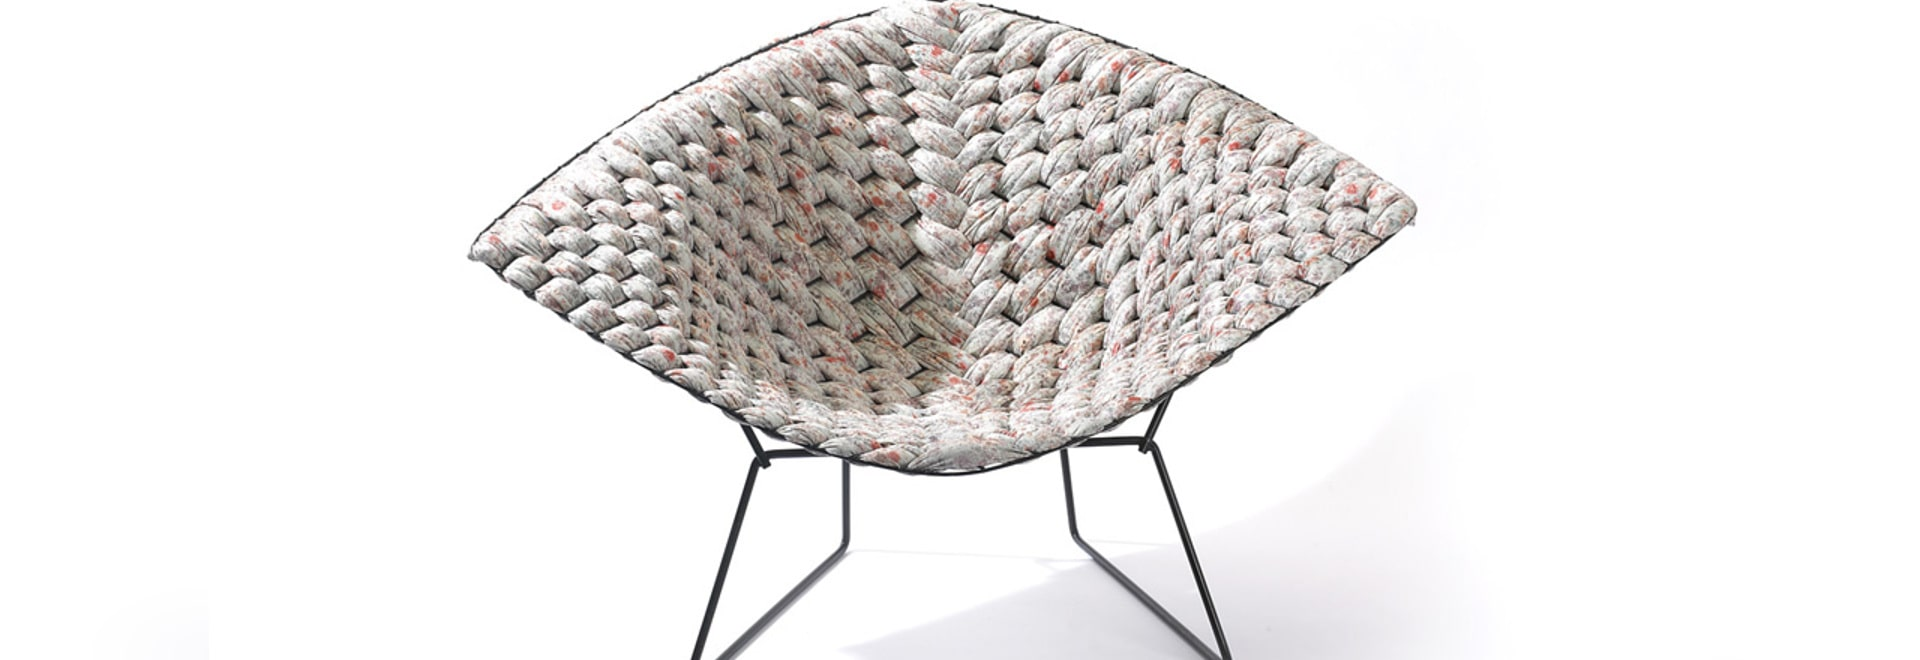 CLÉMENT BRAZILLE PAYS HOMAGE TO BERTOIA'S ICONIC CHAIRS